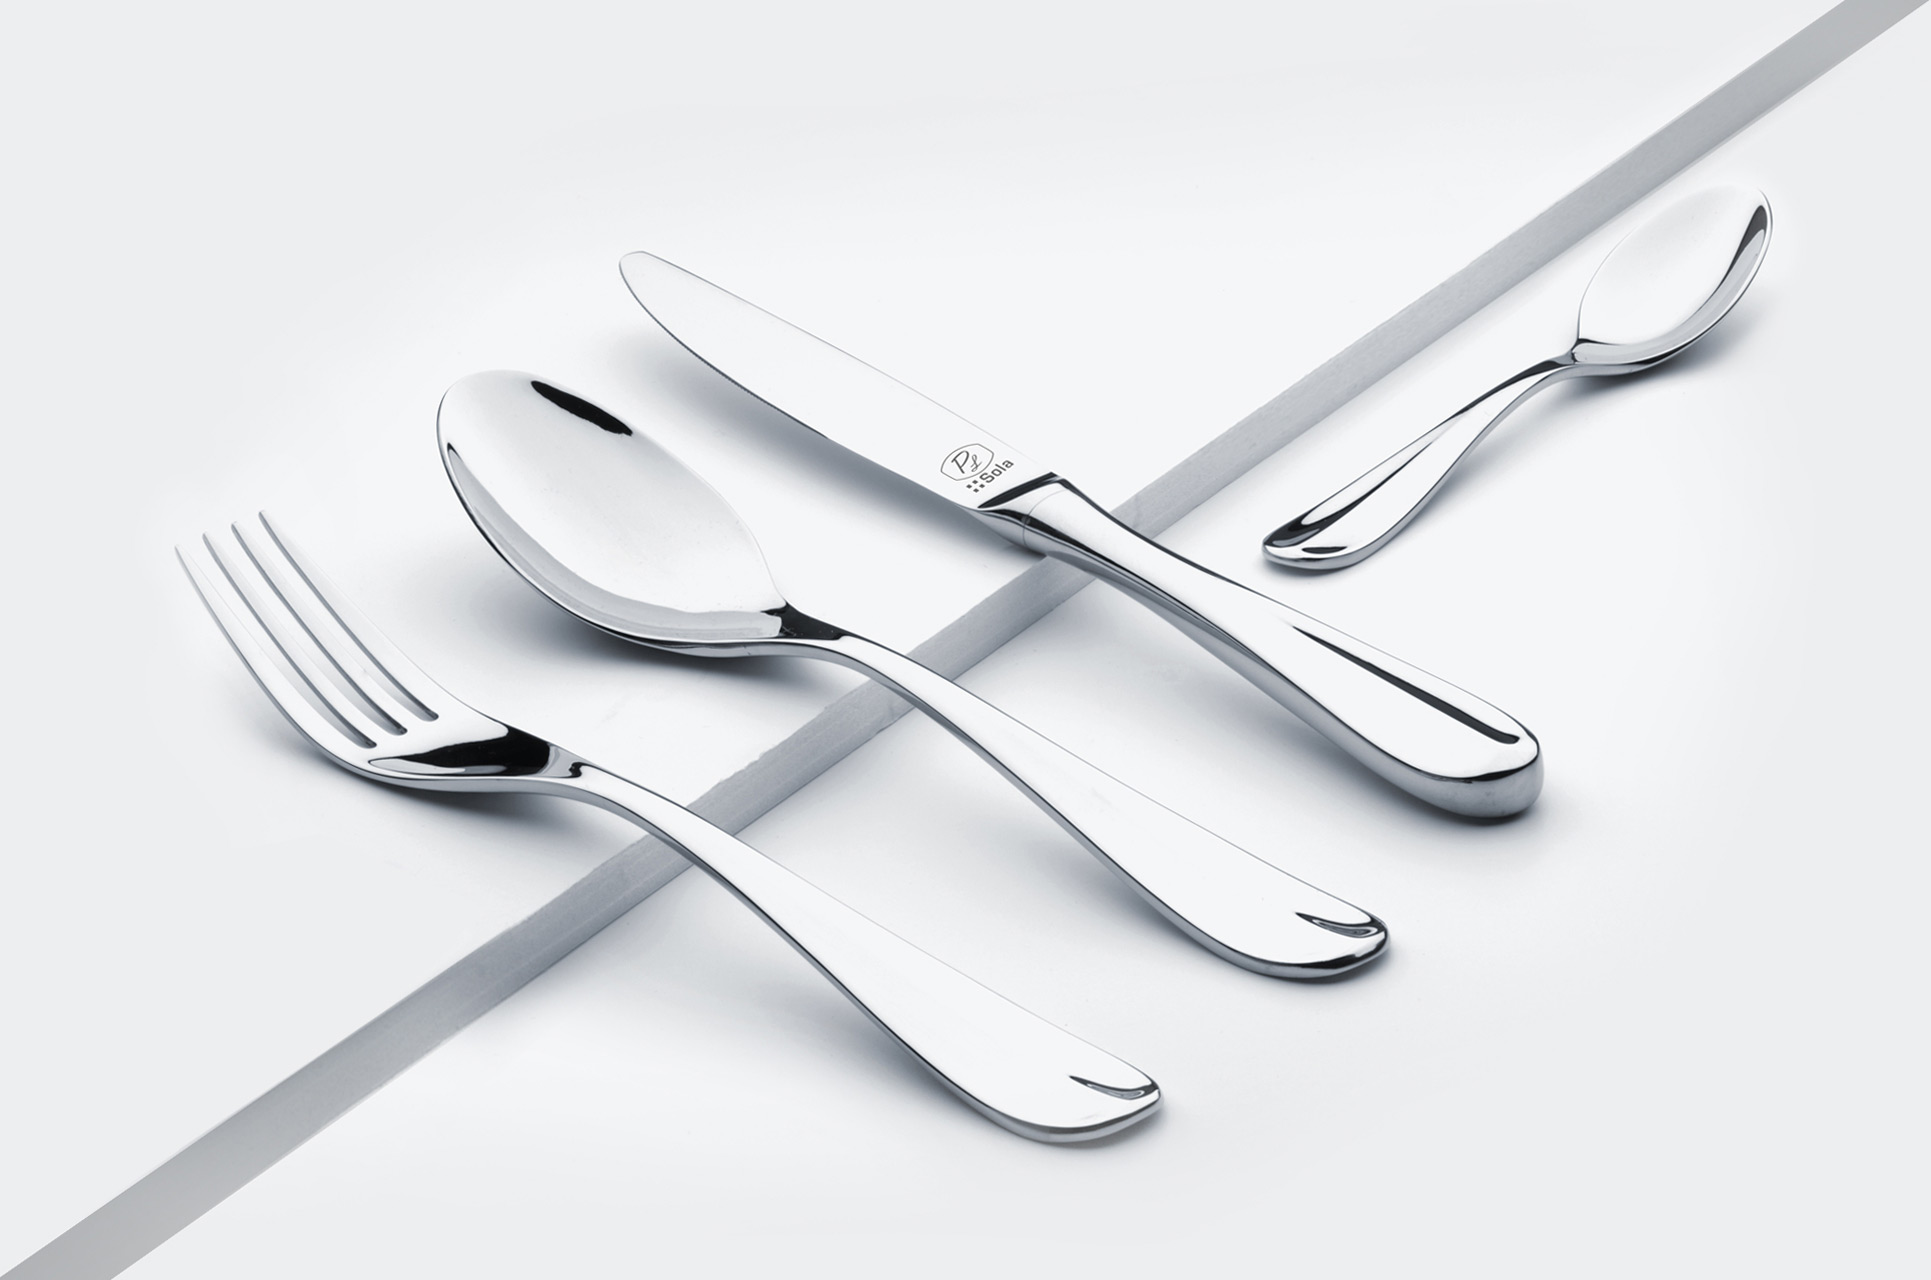 Rented Cutlery